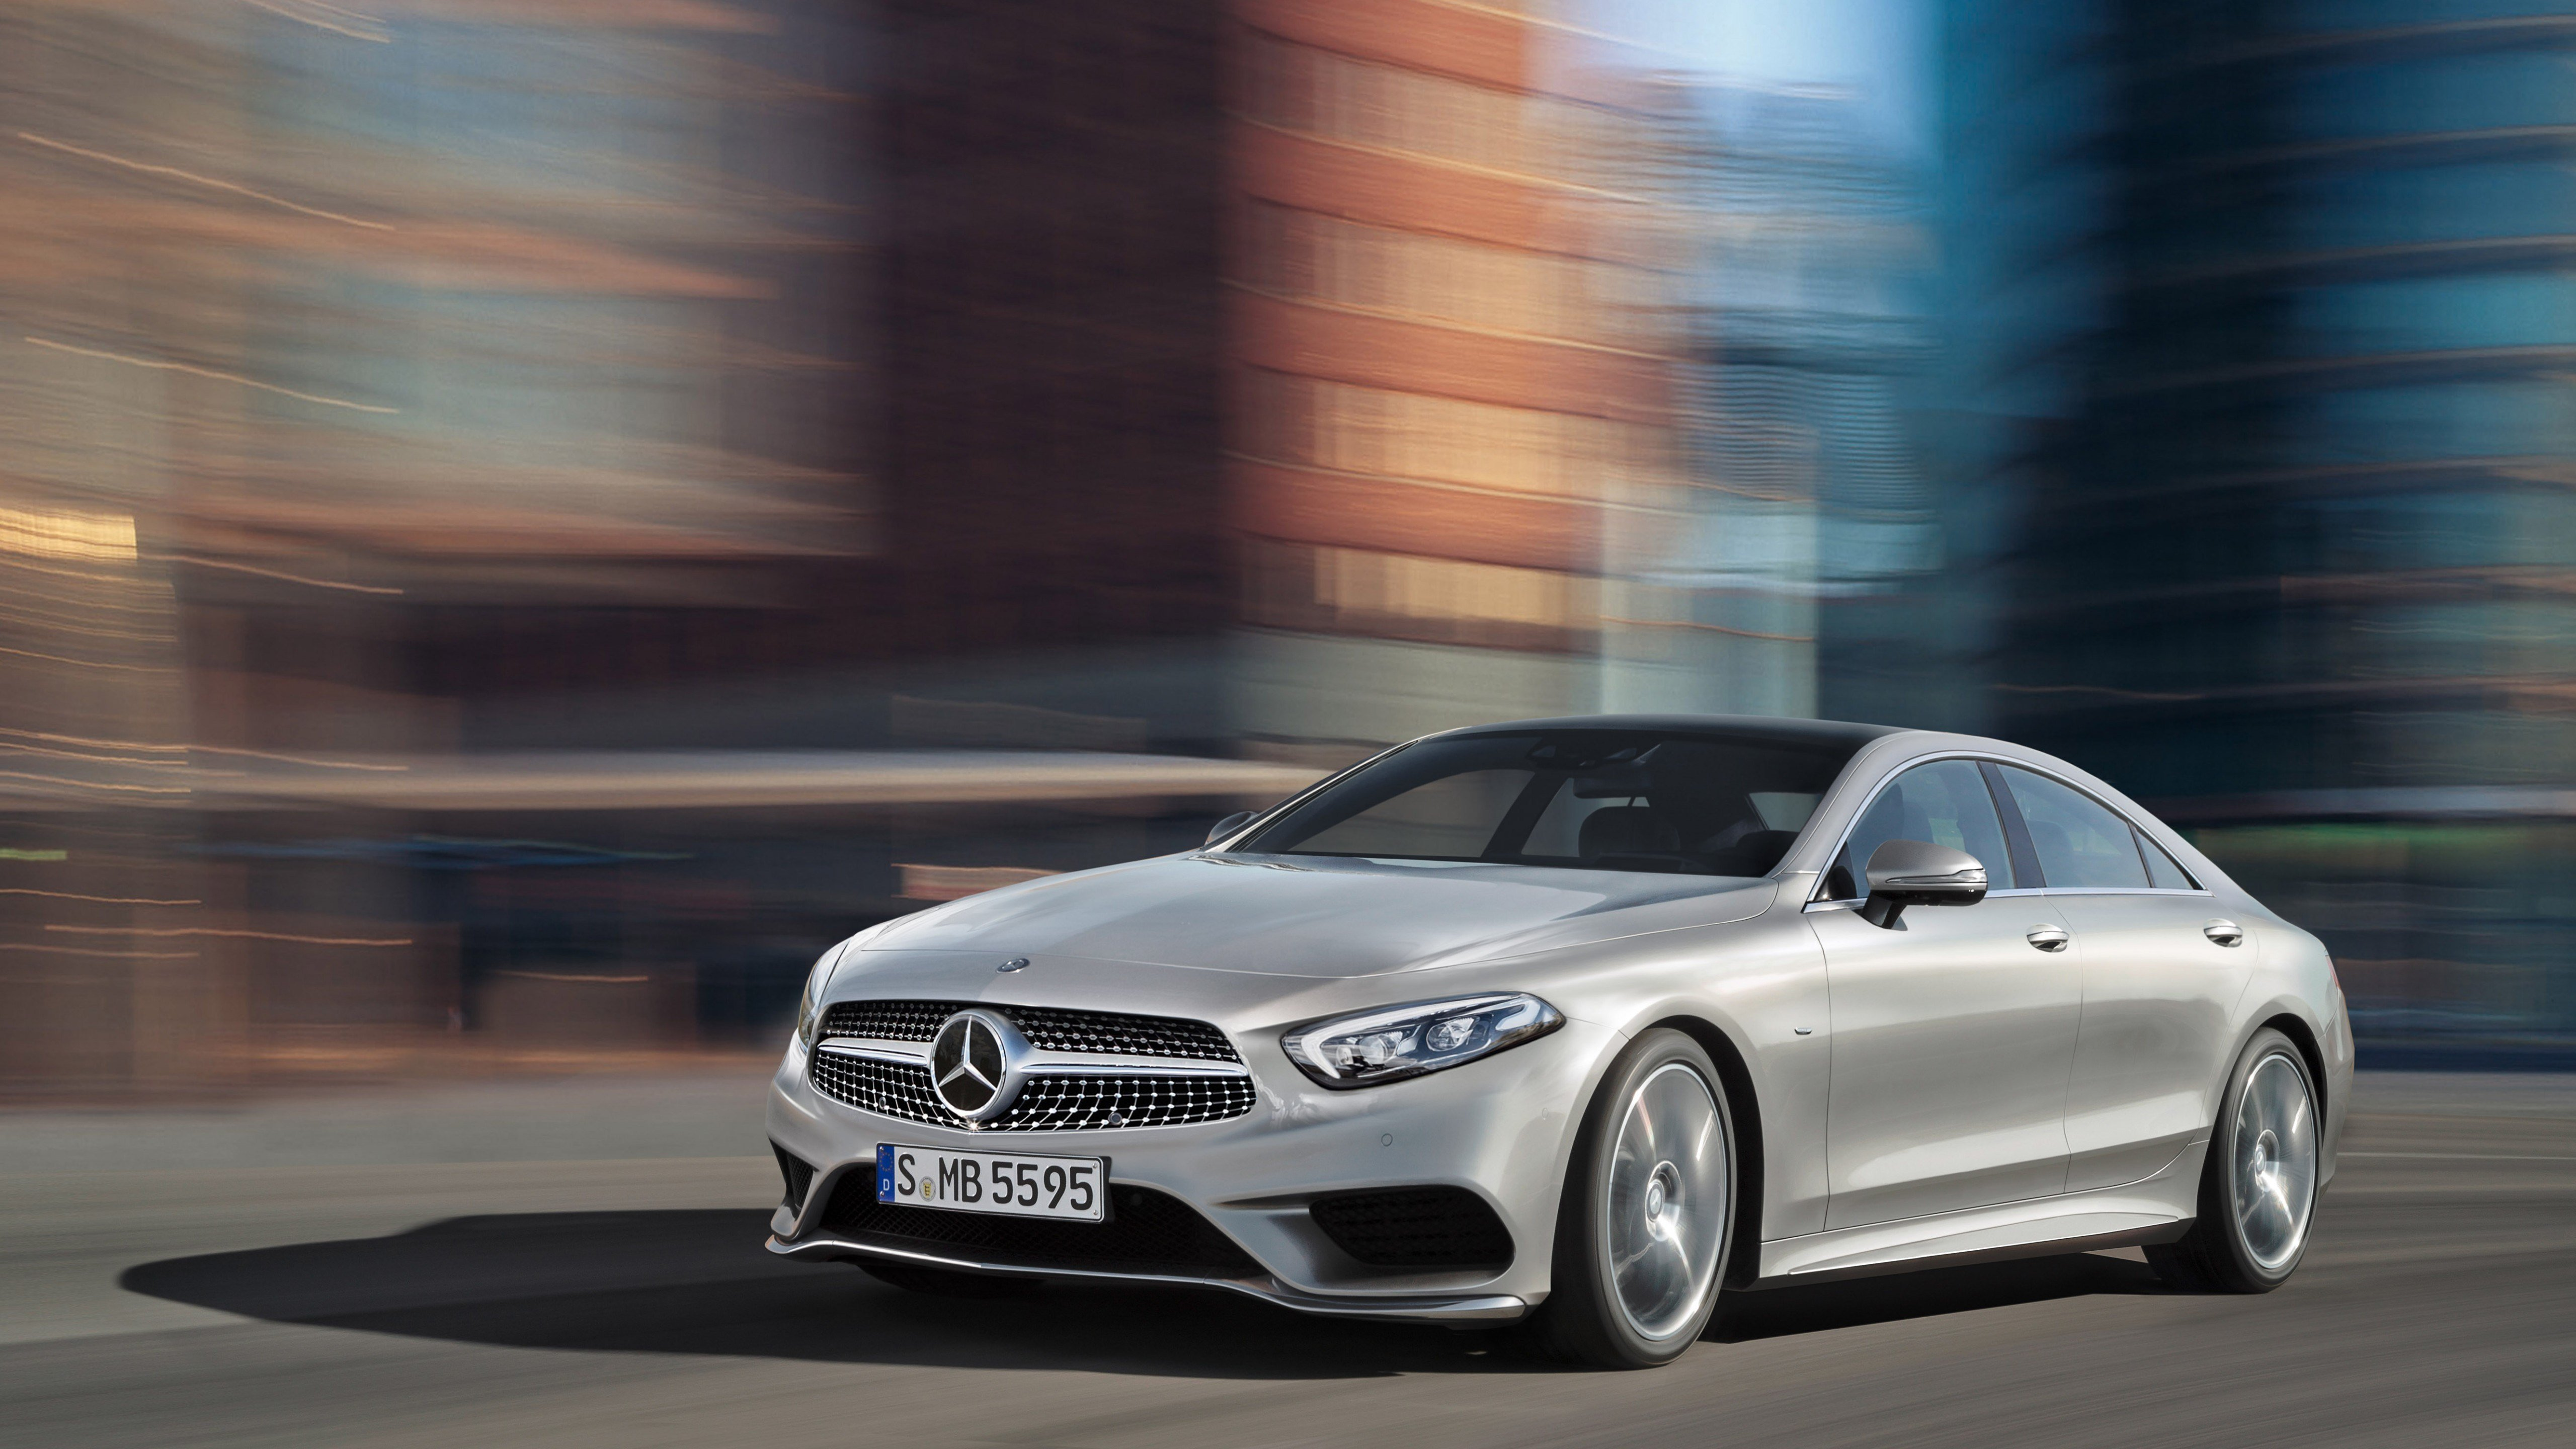 Latest Wallpaper Mercedes Benz Cls 2018 Cars 5K Cars Bikes Free Download